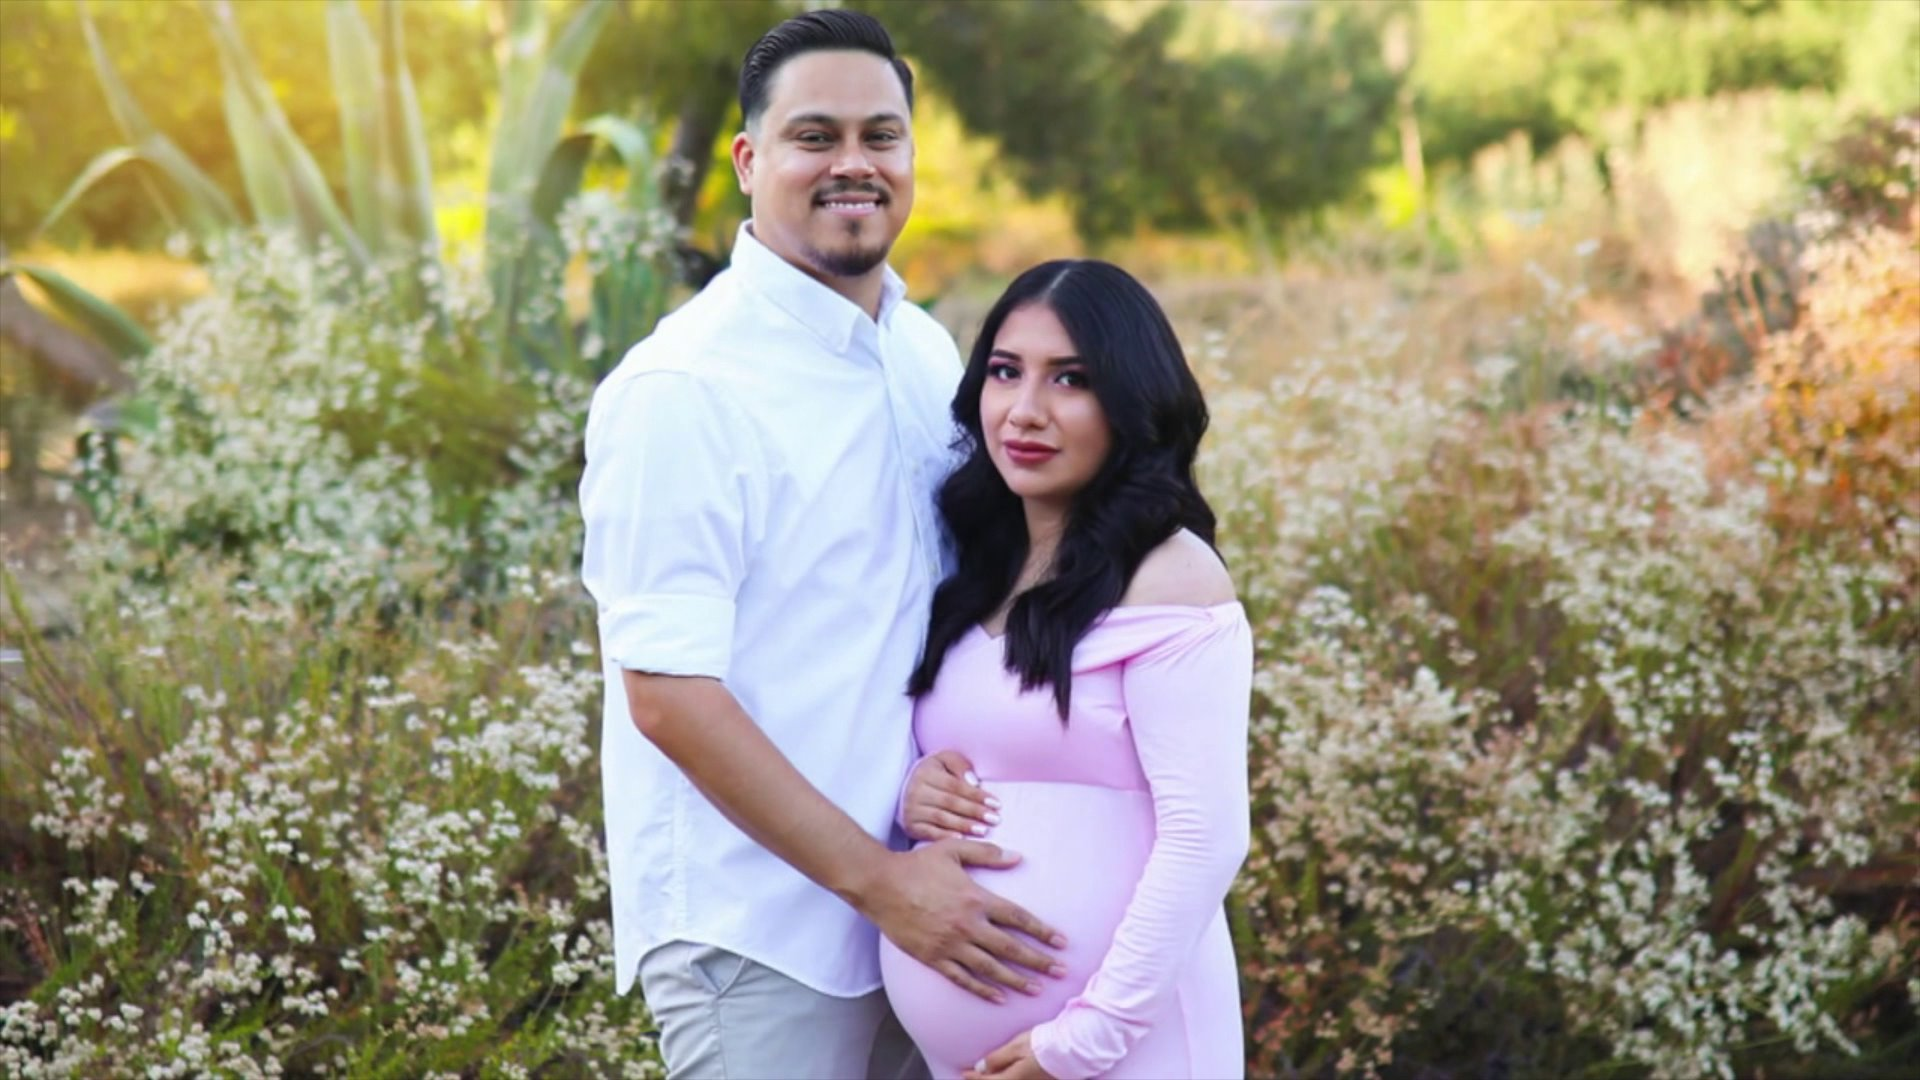 Frank Alvarez and Yesenia Aguilar are seen in a family photo provided to KTLA.